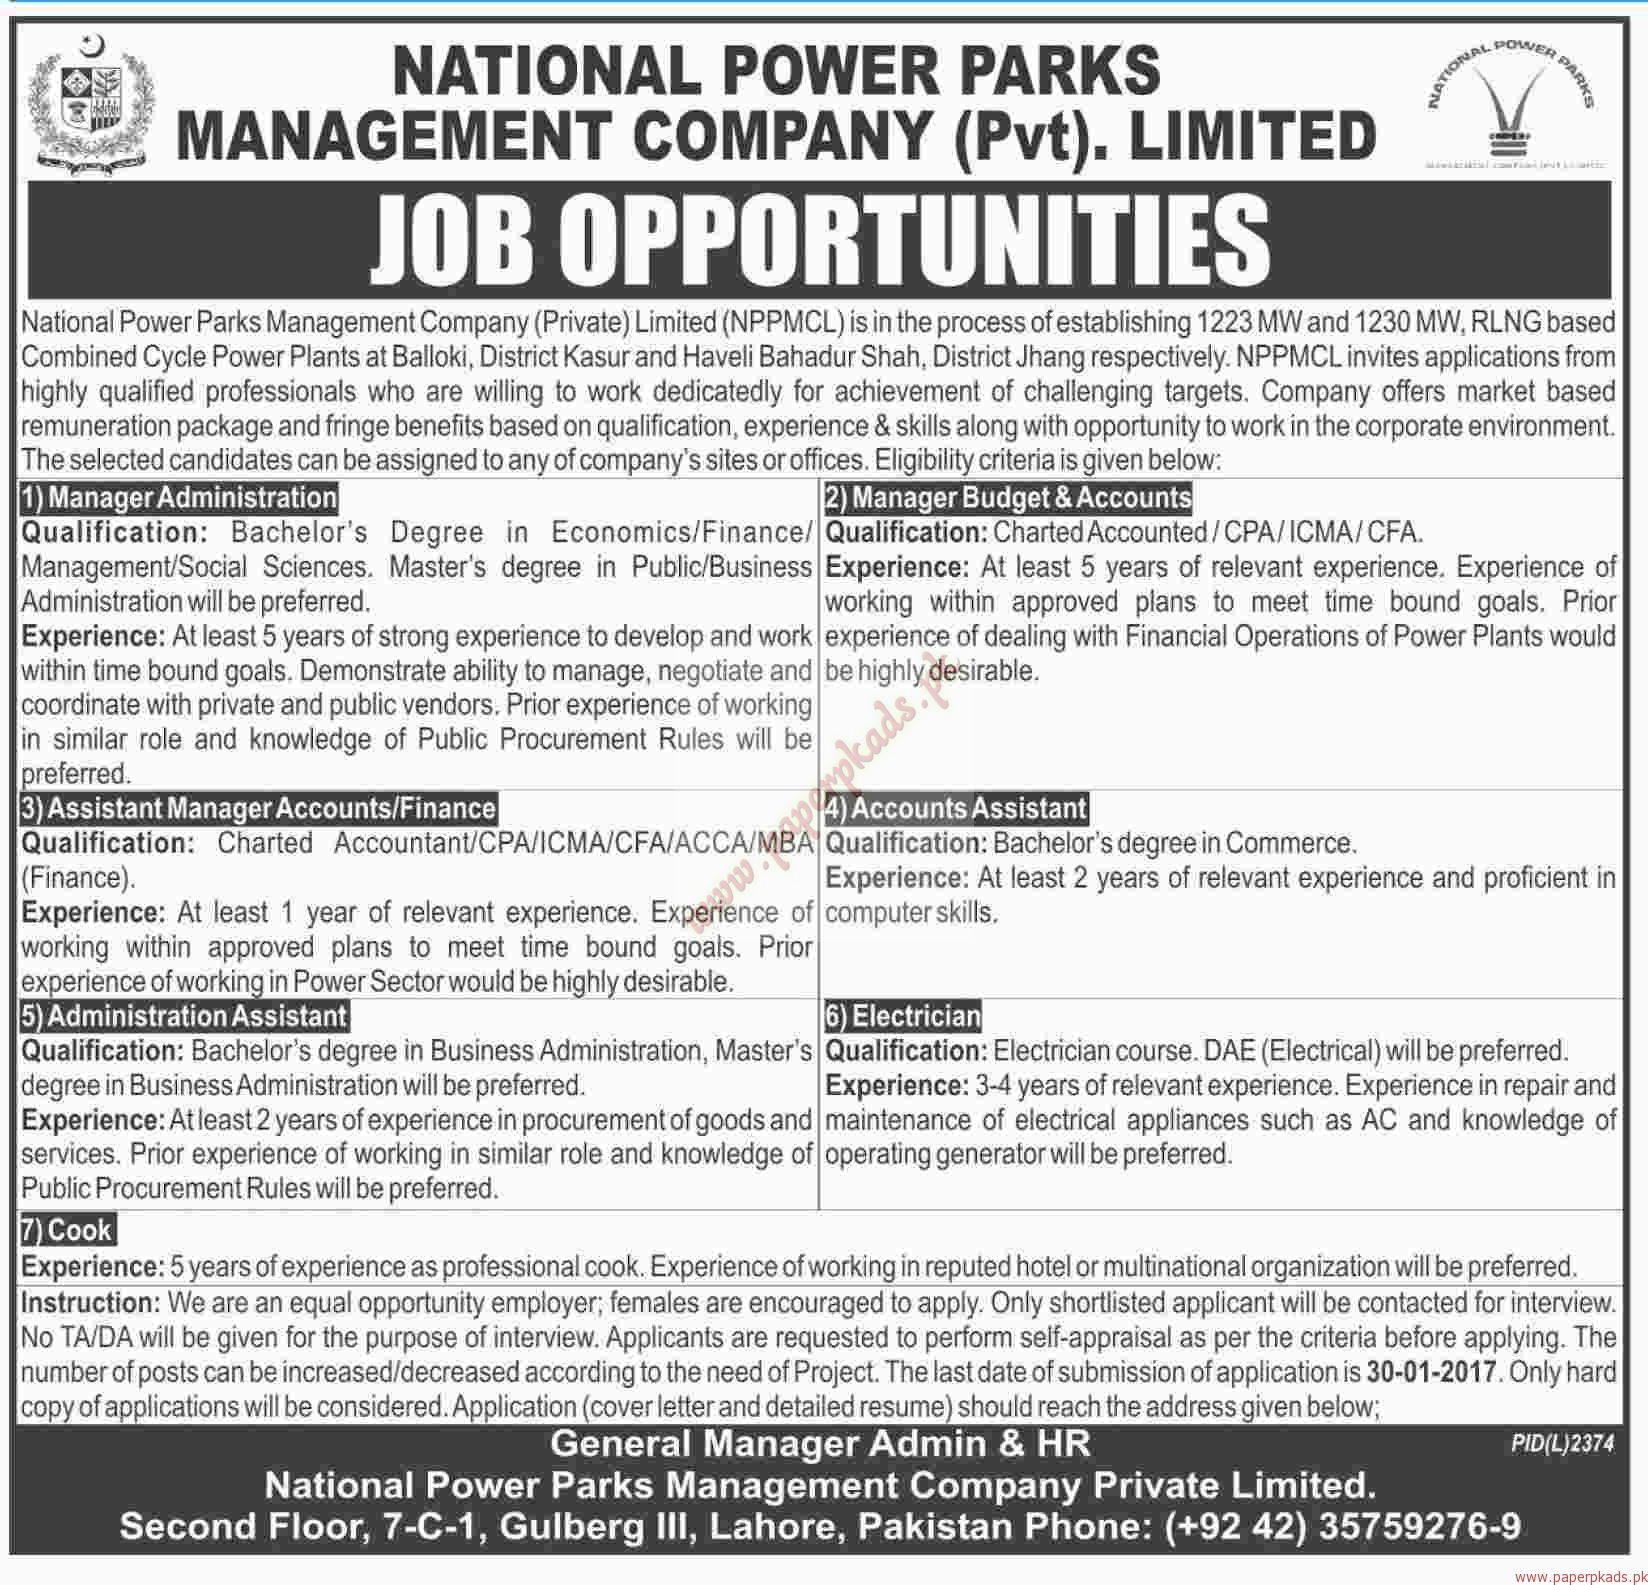 national power parks management company private limited jobs national power parks management company private limited jobs dawn jobs ads 16 2017